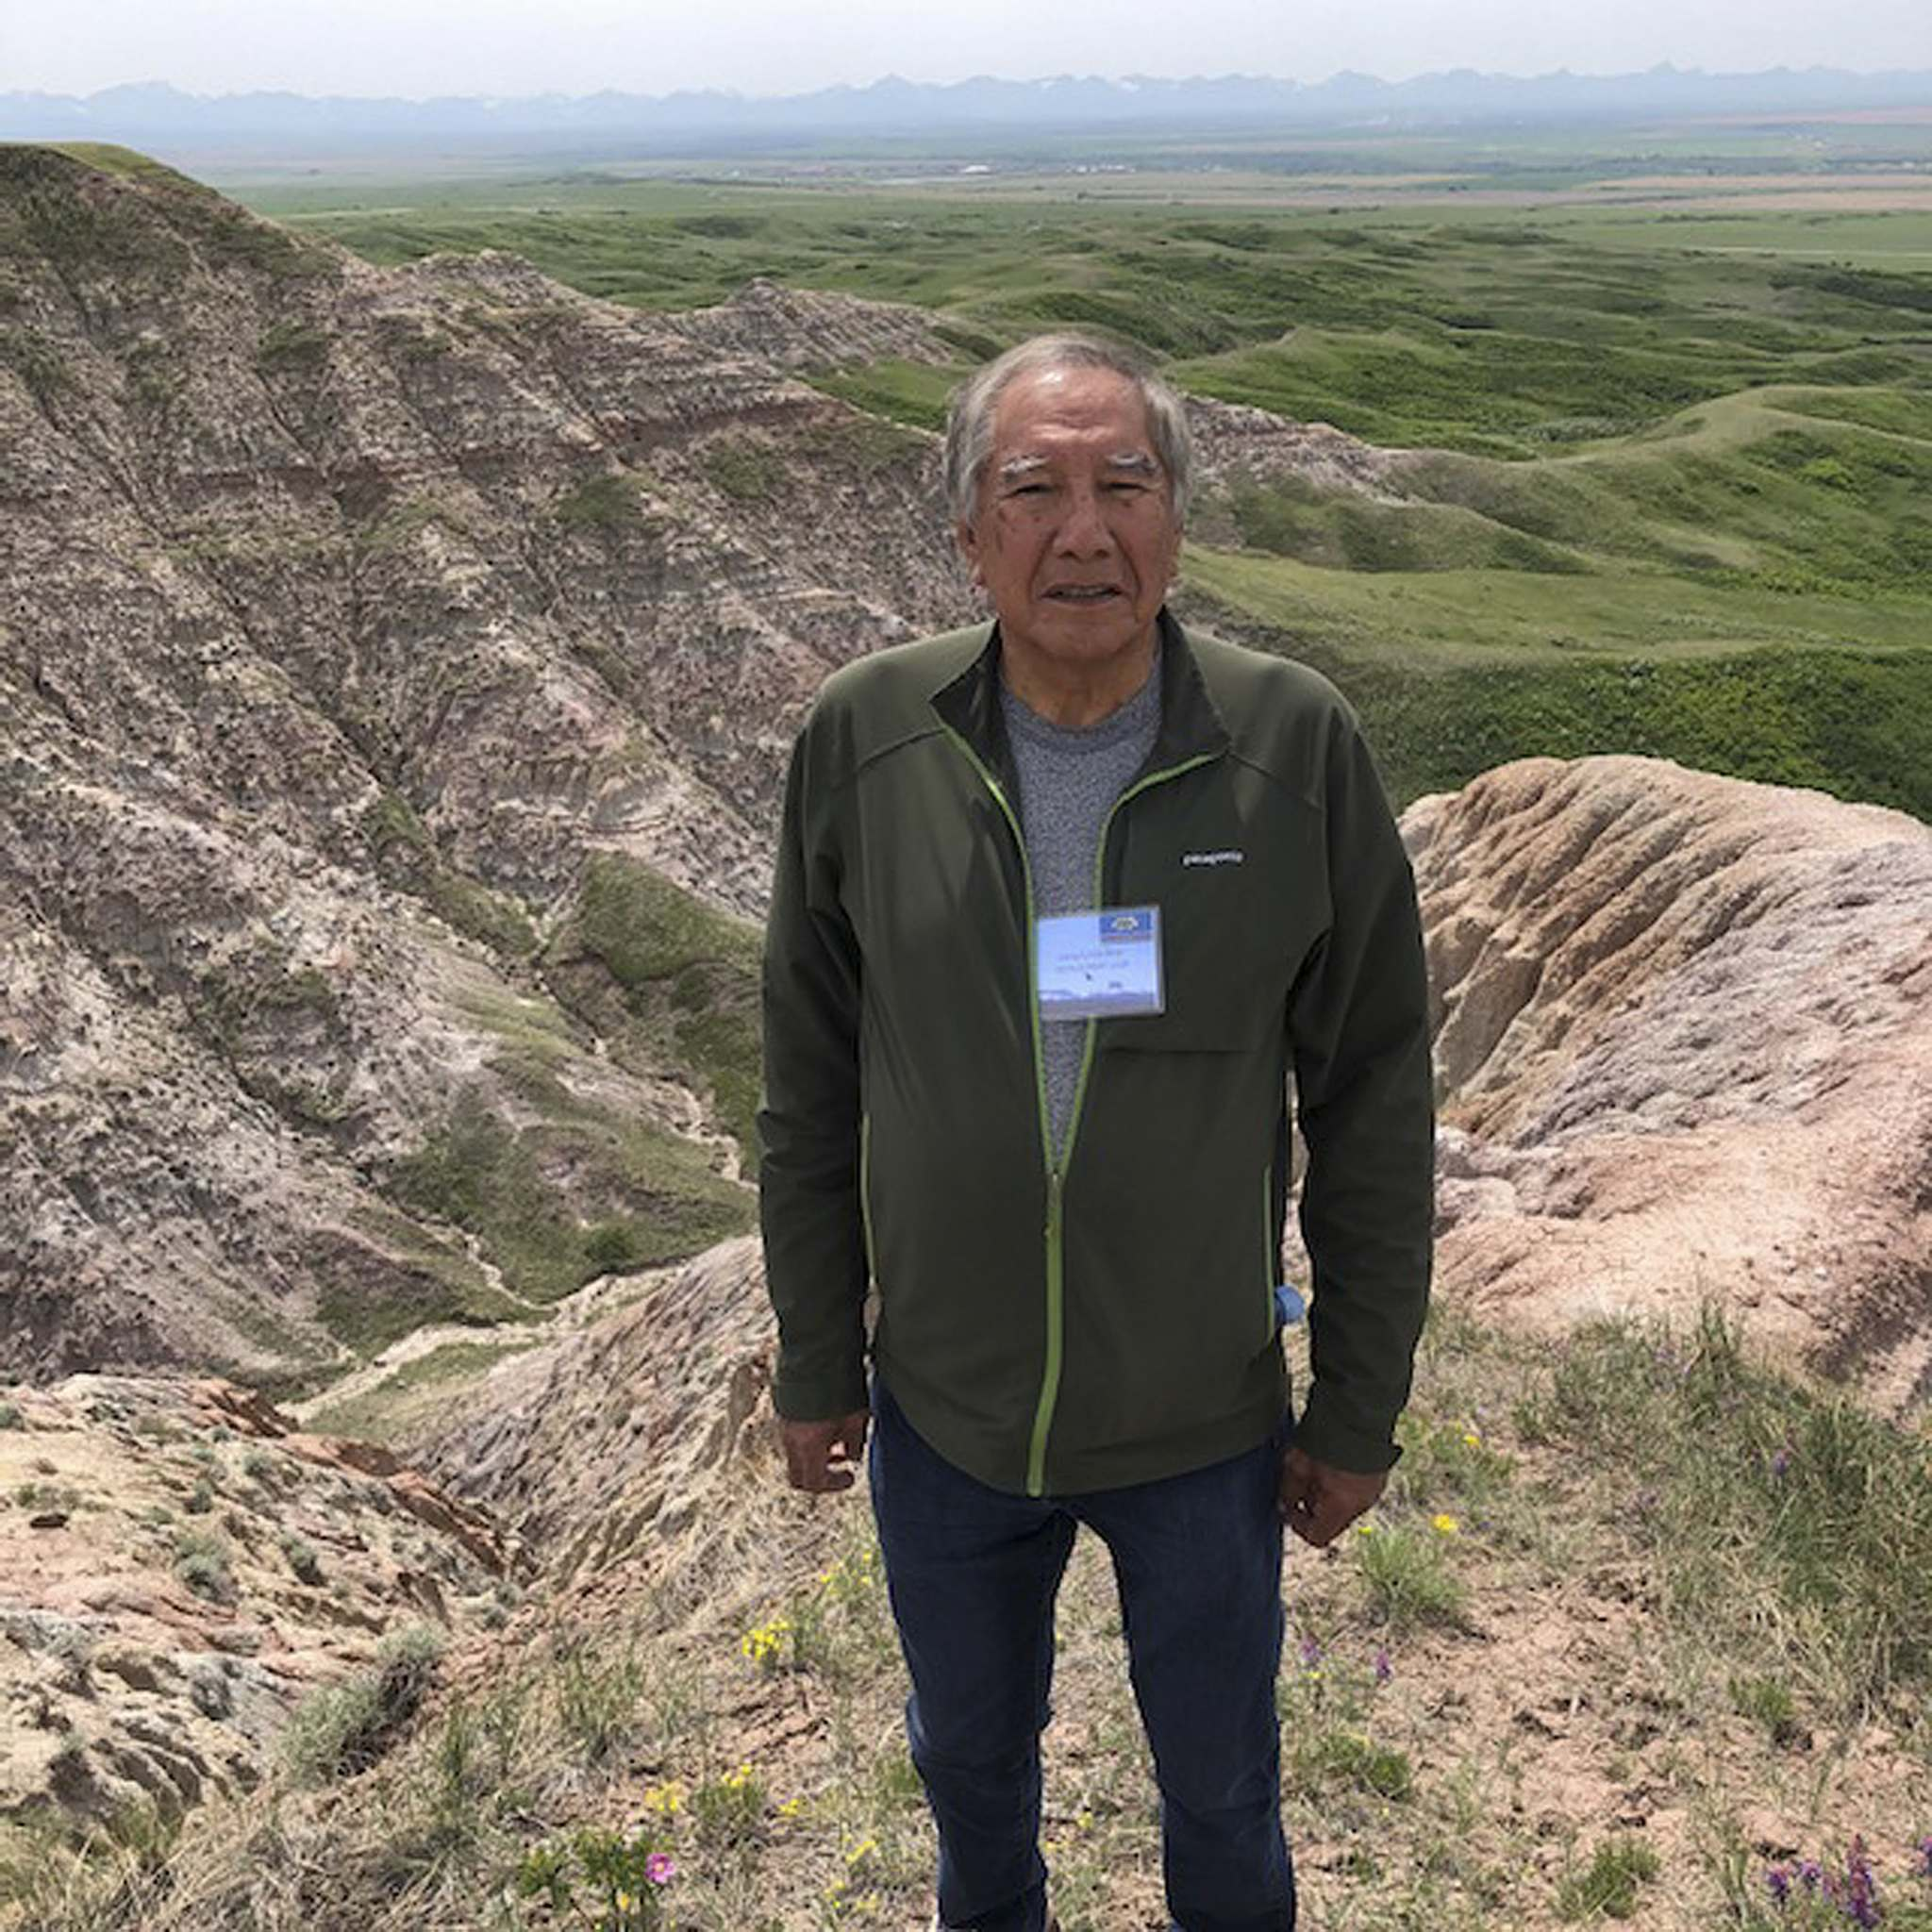 Little Bear, an Order of Canada recipient and a professor emeritus at the University of Lethbridge, says Indigenous communities have known about climate change for at least five or six decades based on direct observations of — and connection with — the land. (Supplied)